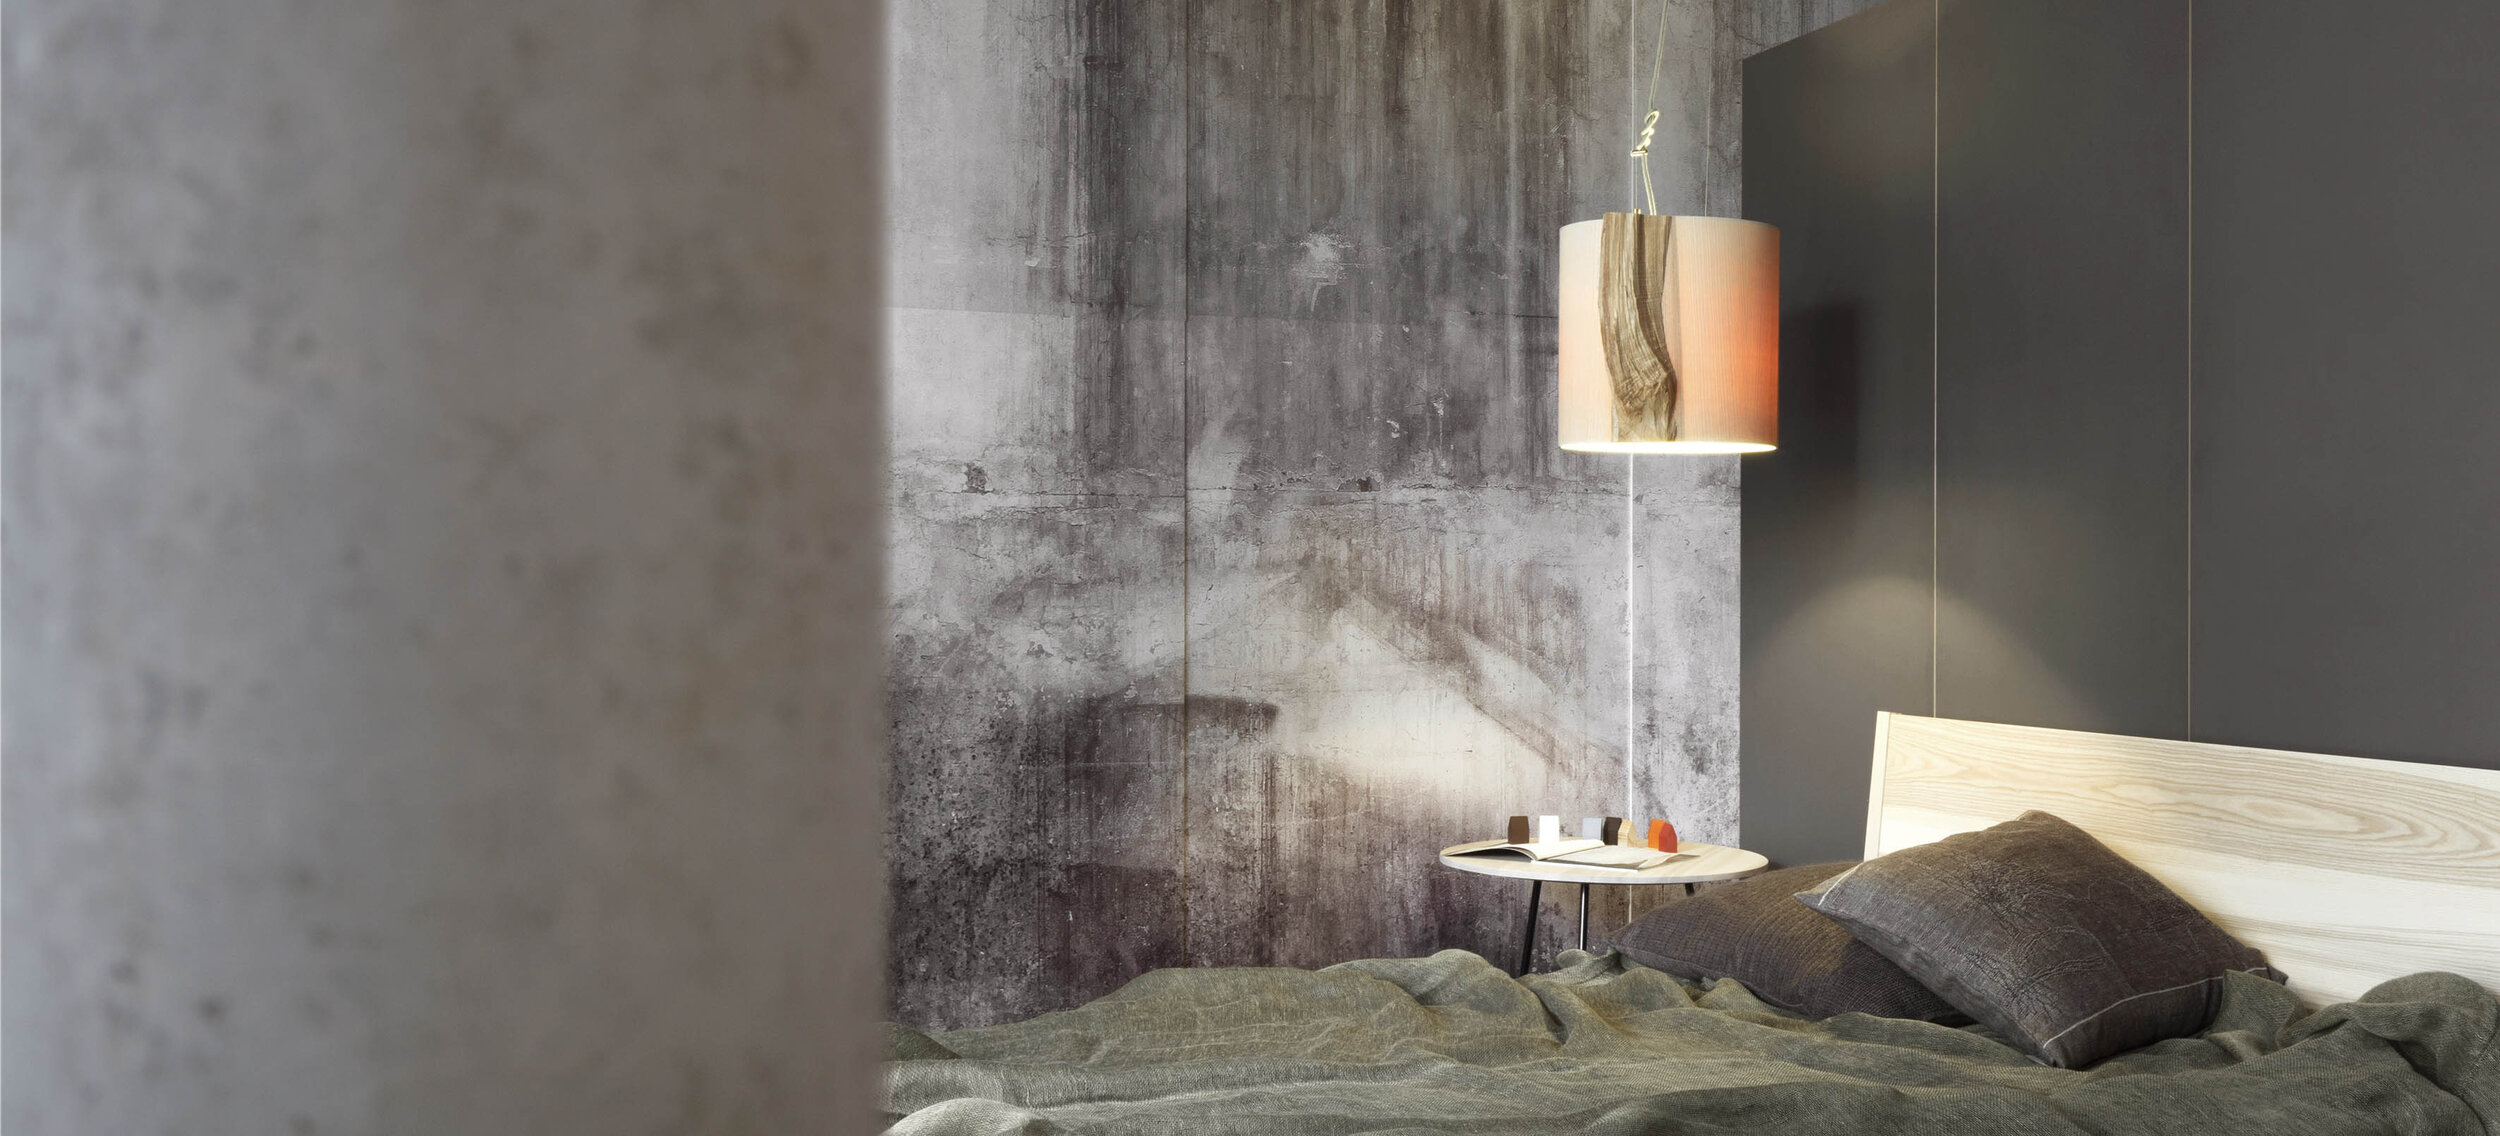 Marie-Burgos-Design.The-Wise-one-pend-interior.MBcollection.jpg